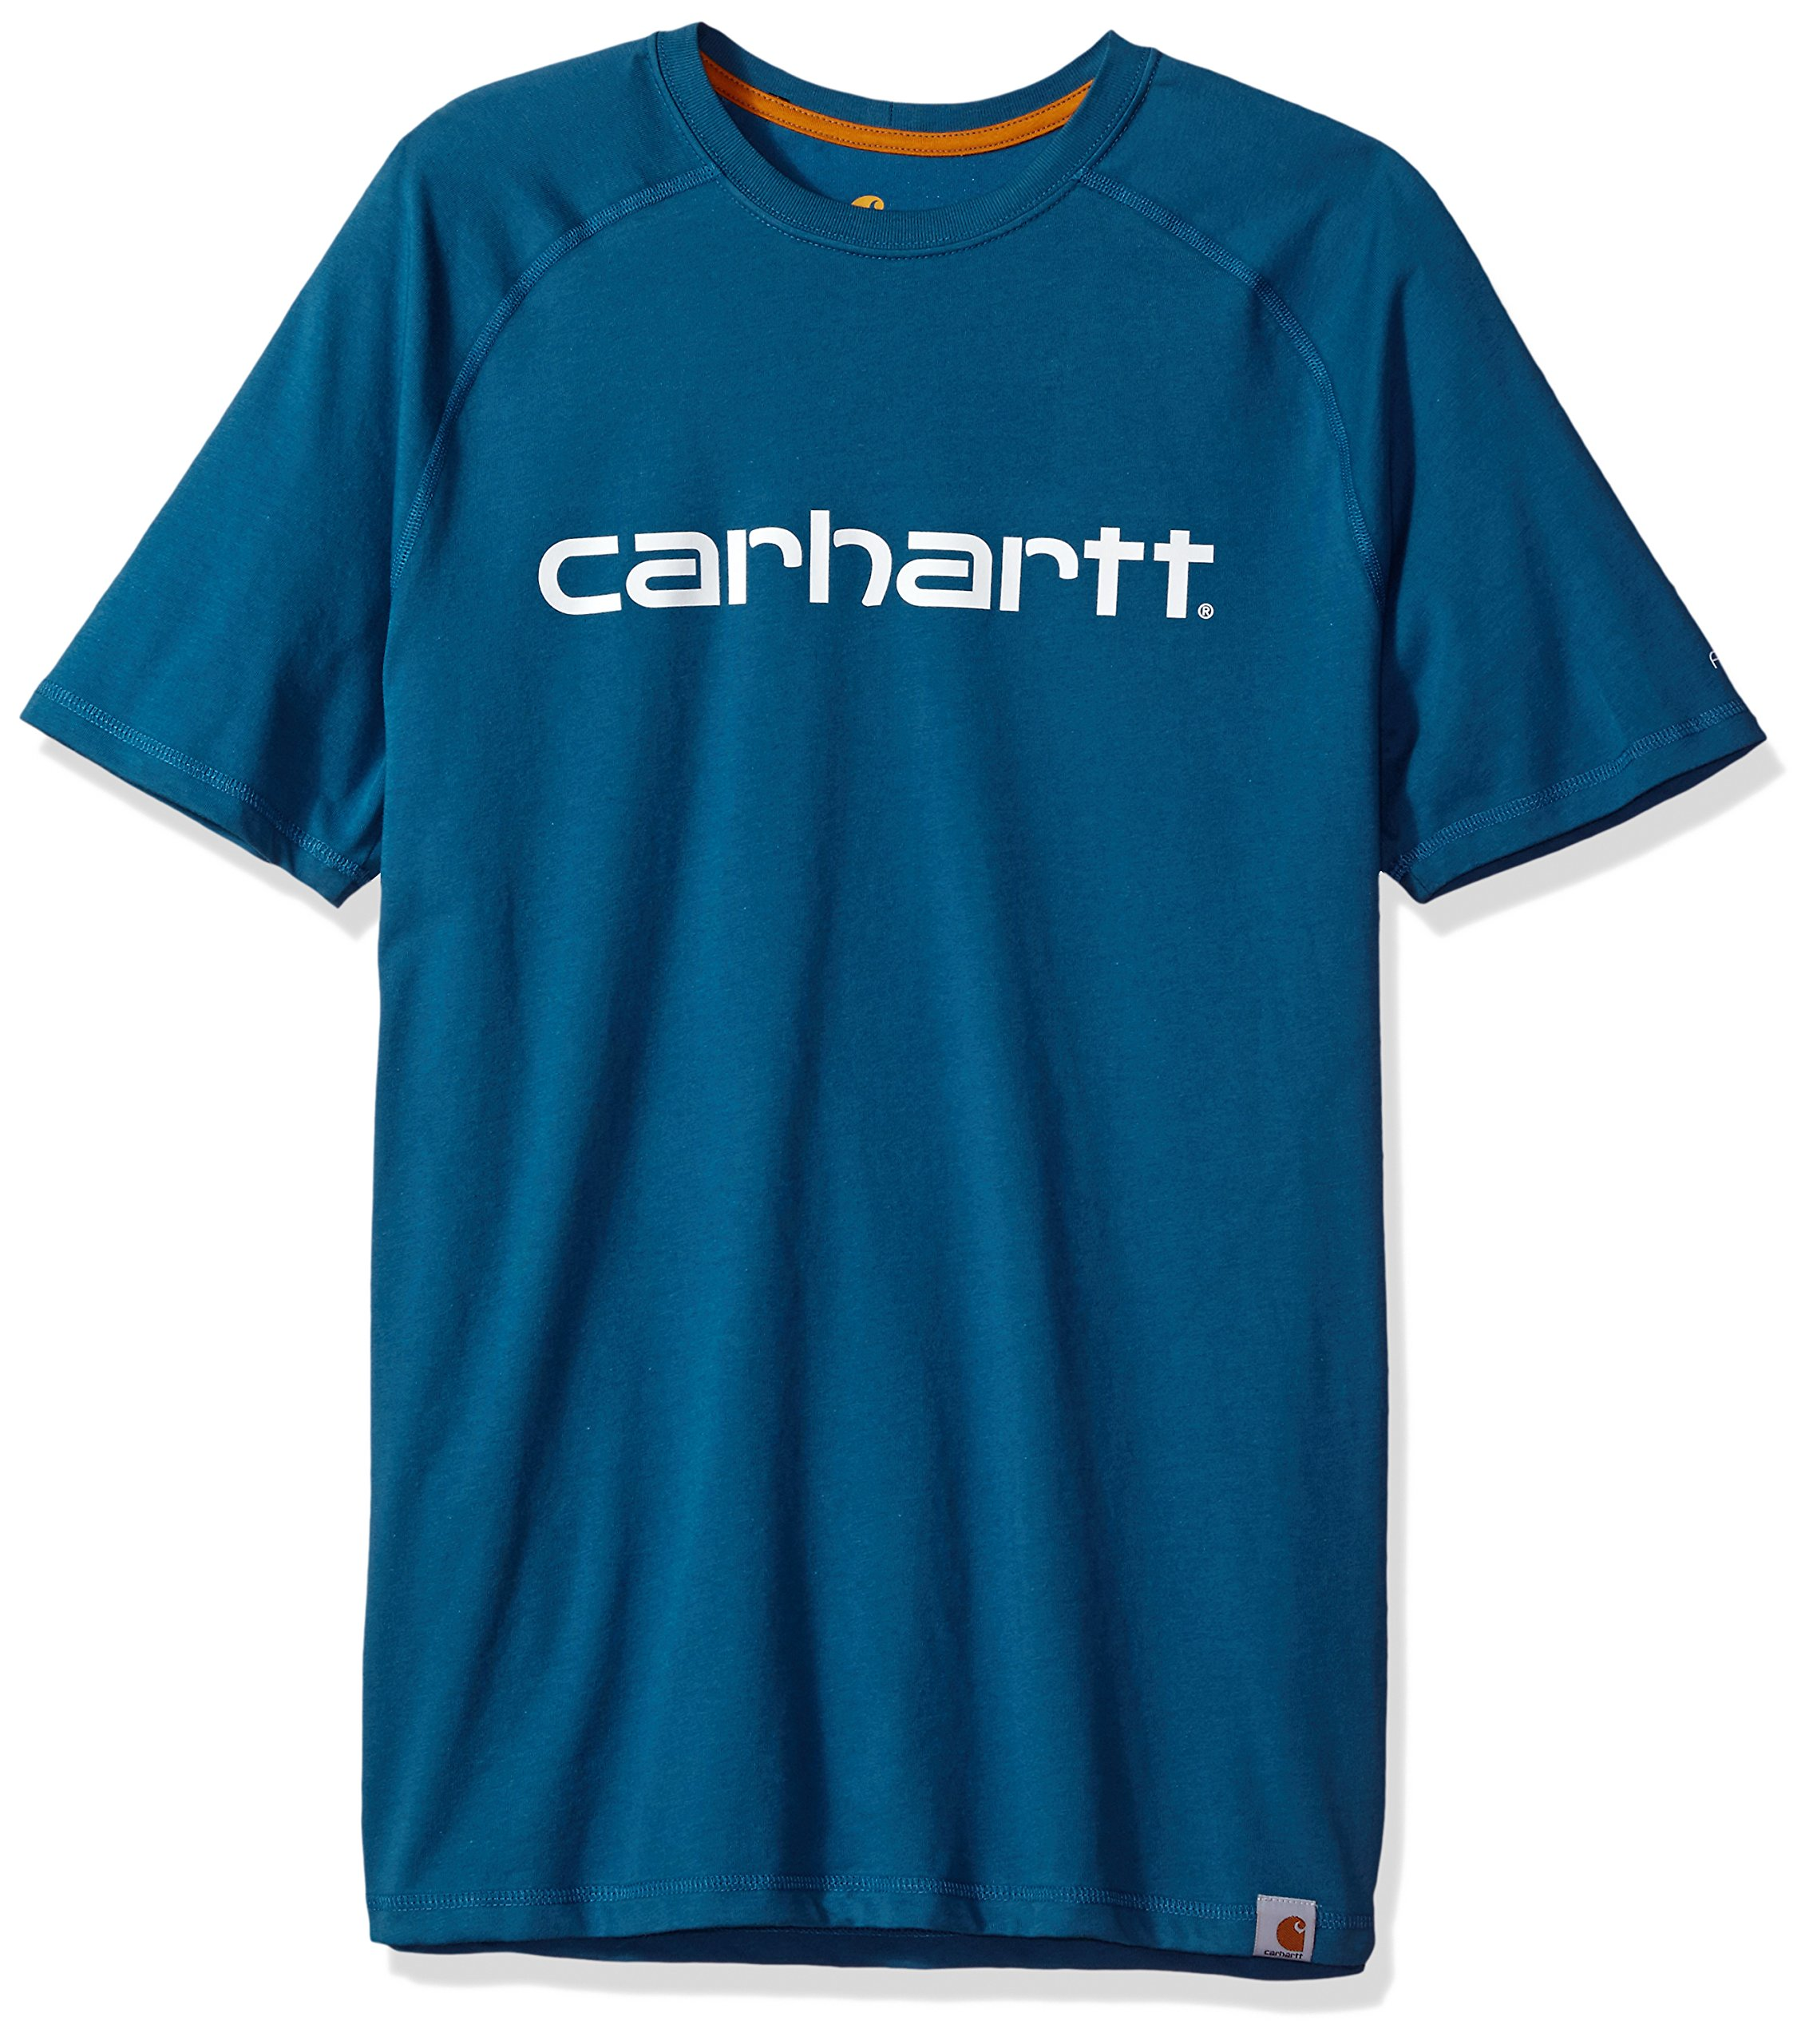 Carhartt Men's Force Cotton Delmont Graphic Short Sleeve T-Shirt, Bay Harbor, X-Large